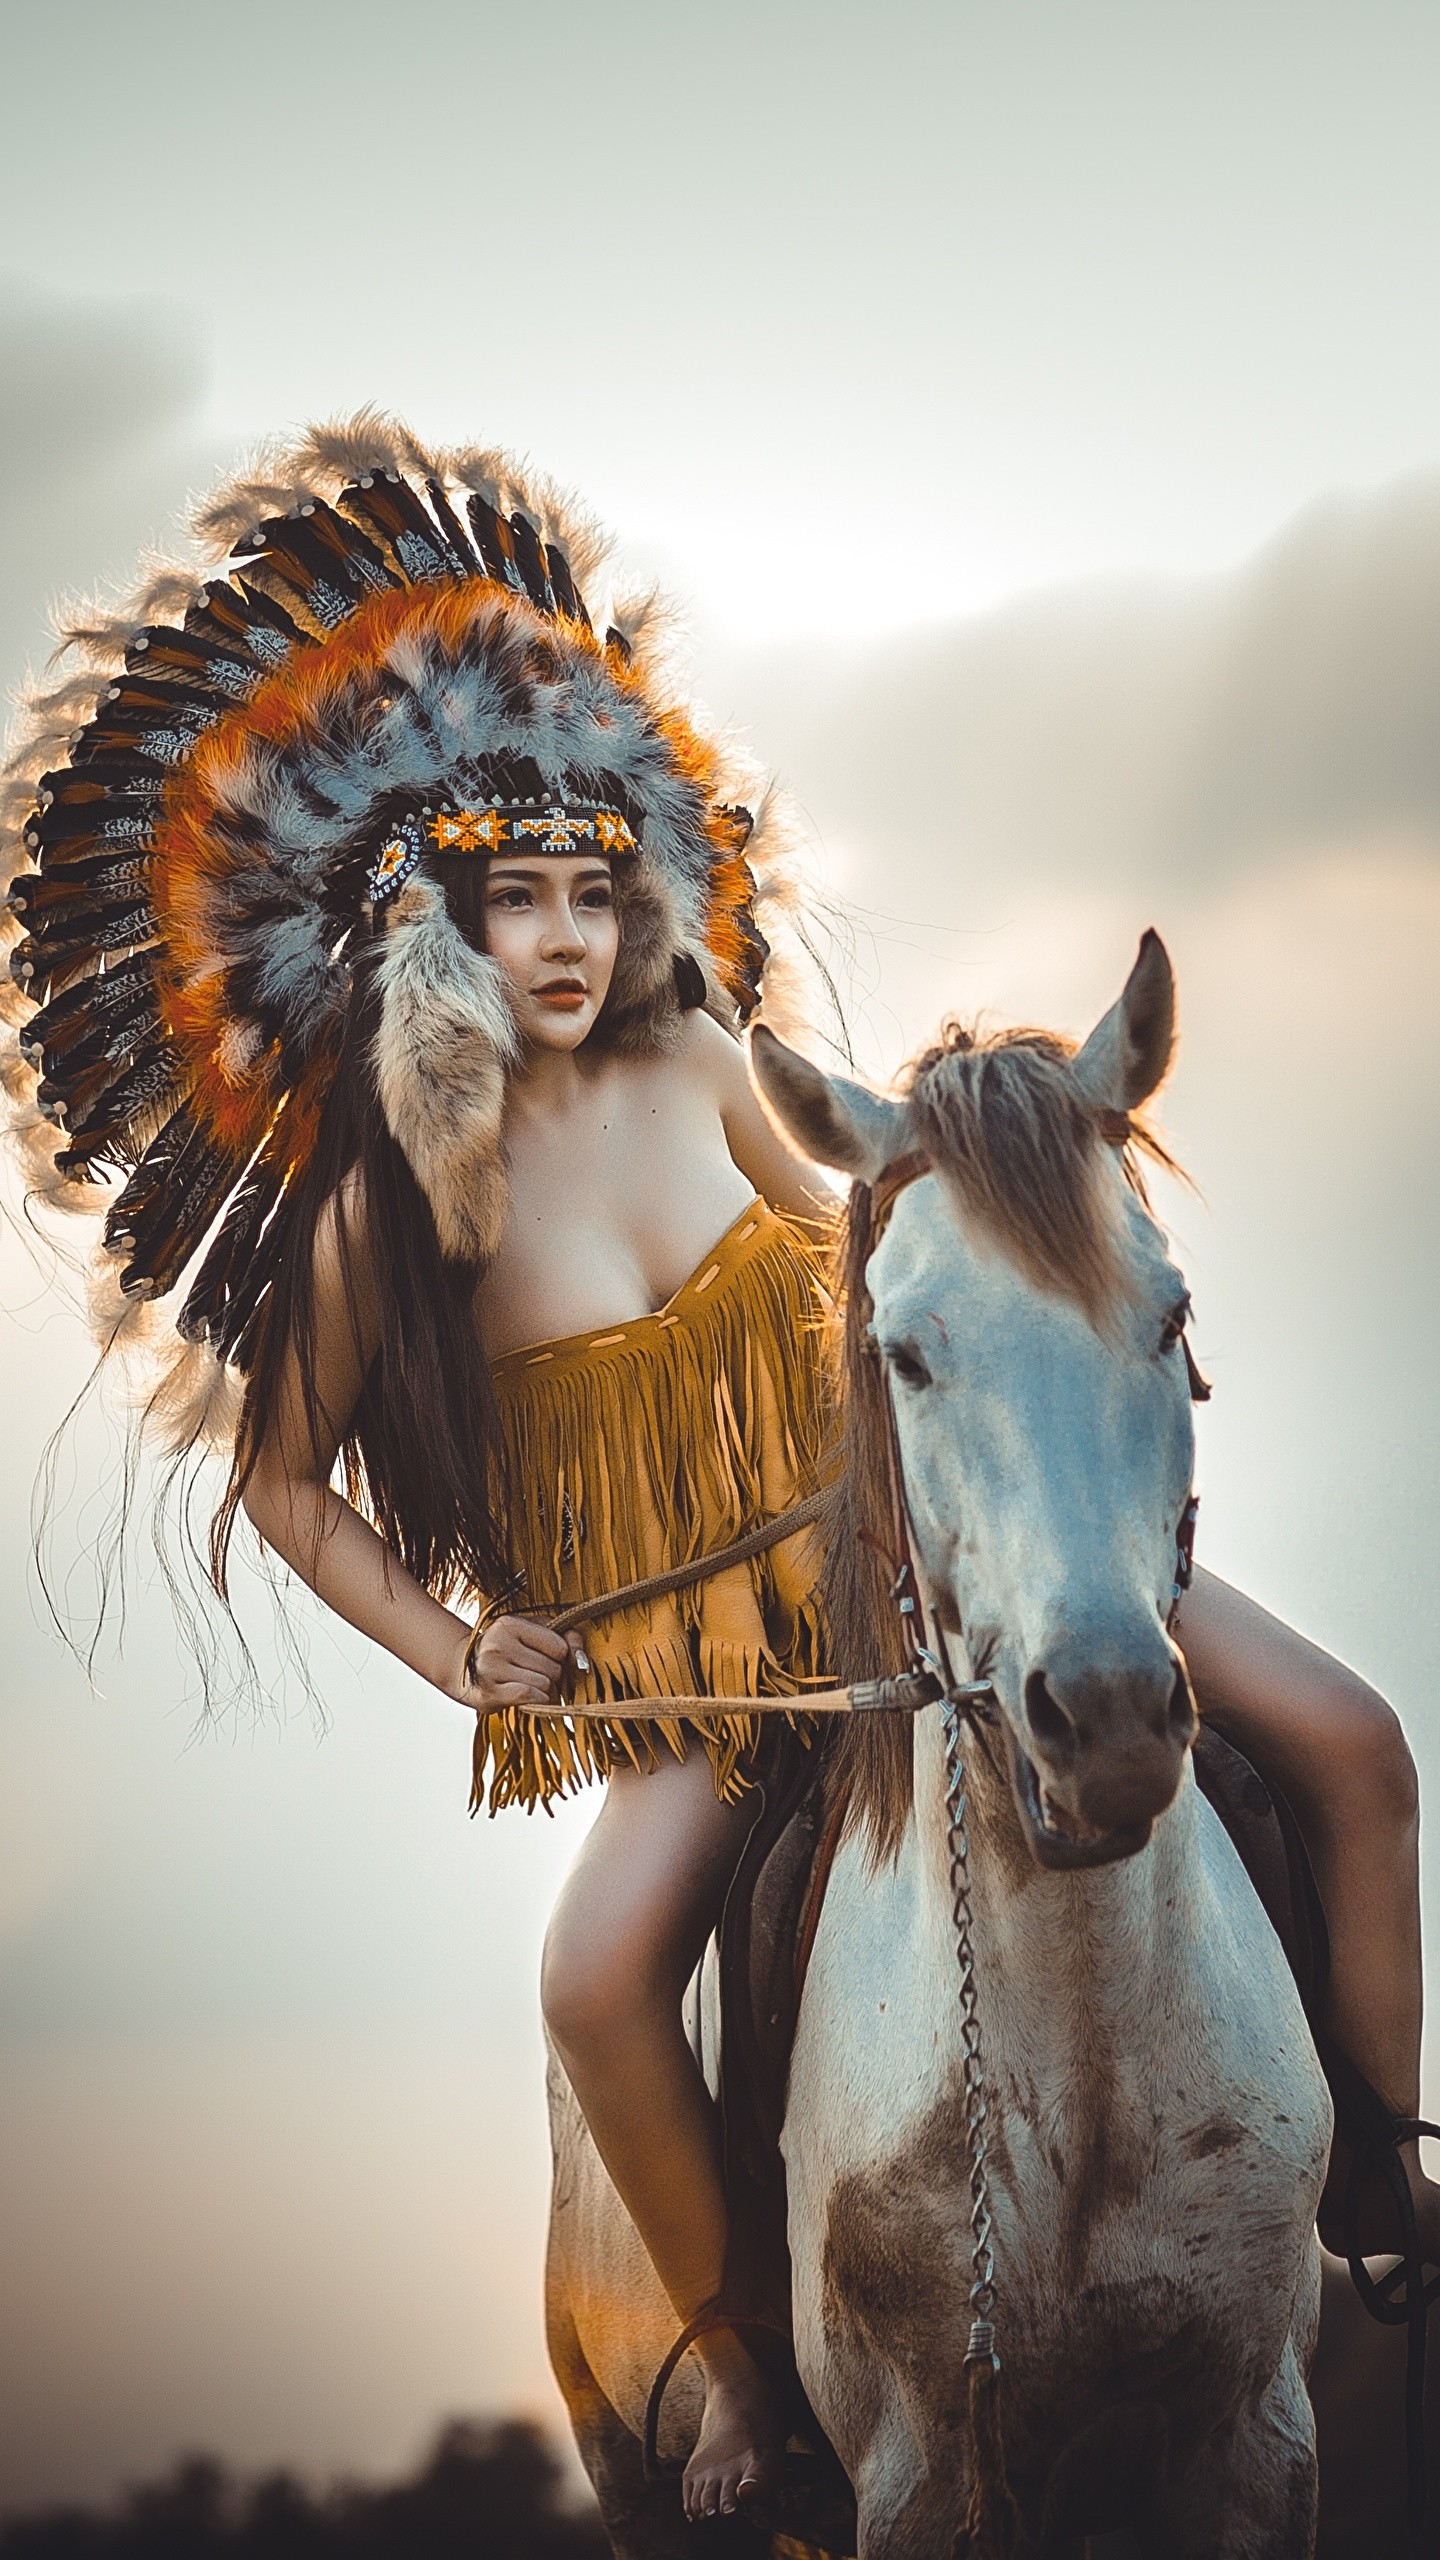 Res: 1440x2560, Wallpaper Horses Indians Girls Animals  Indigenous peoples